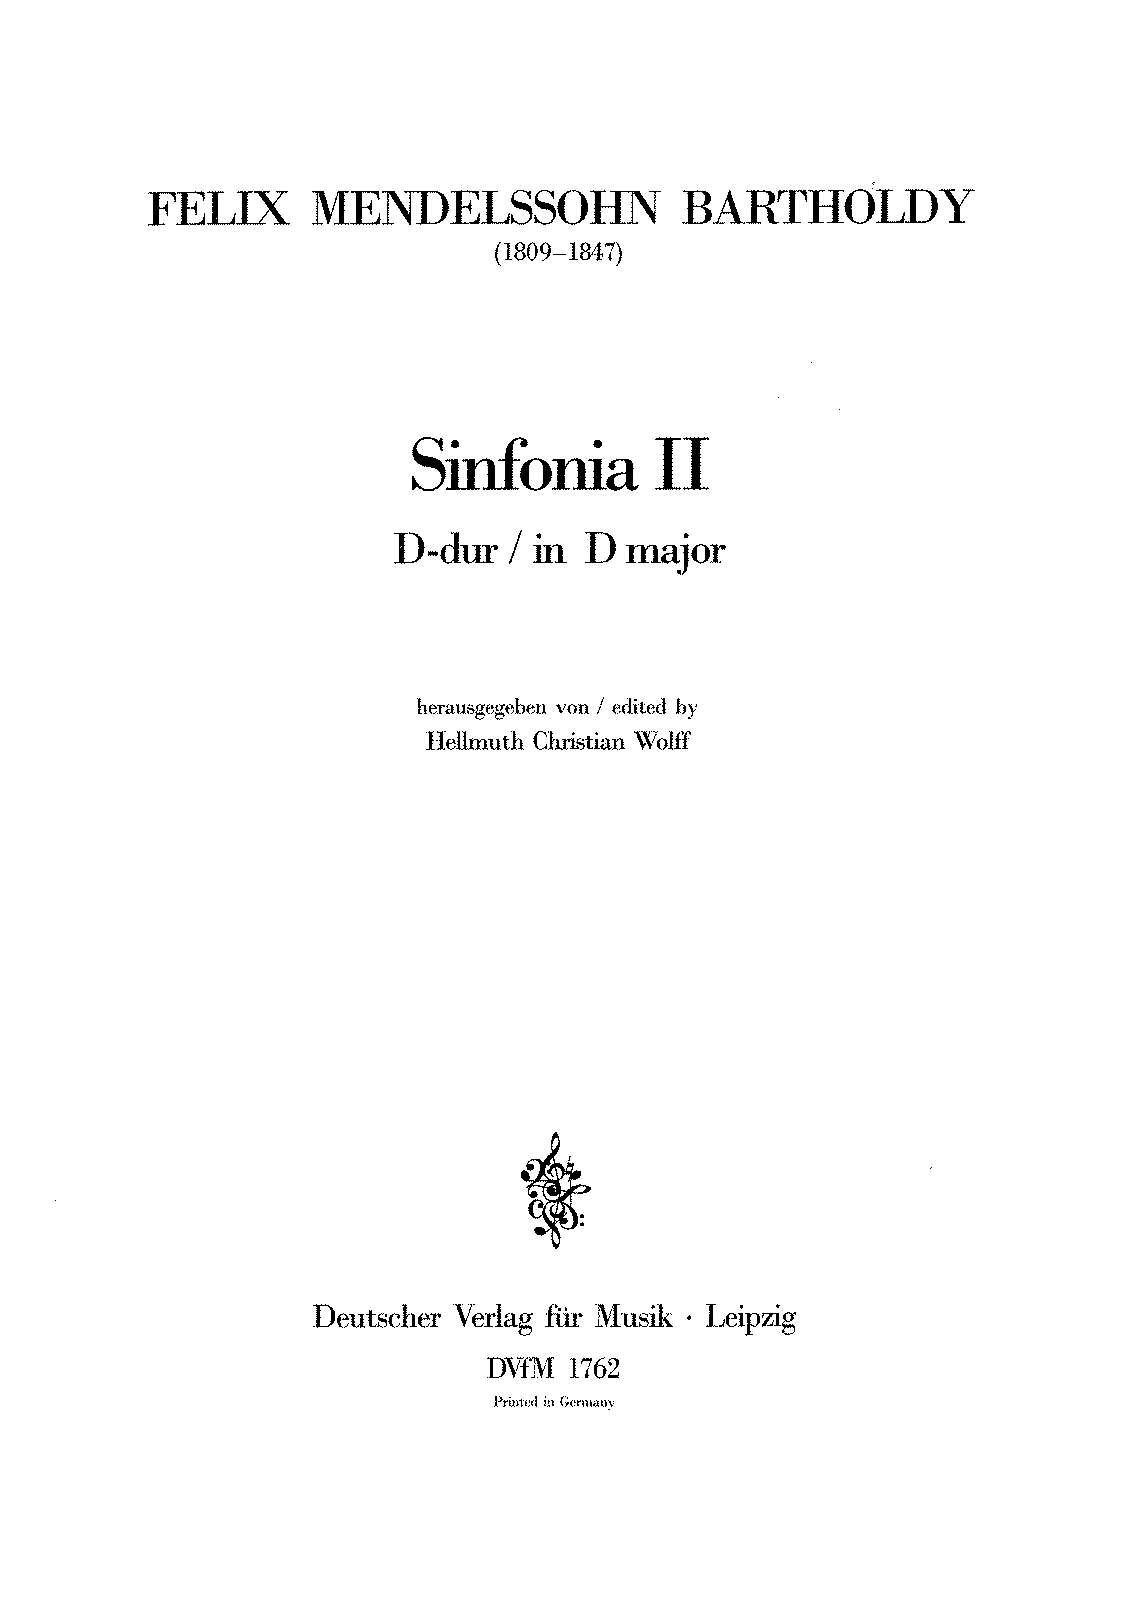 PMLP207271-Mendelssohn, Felix - Sinfonia for String no. 02 in D major MWV N 2.pdf